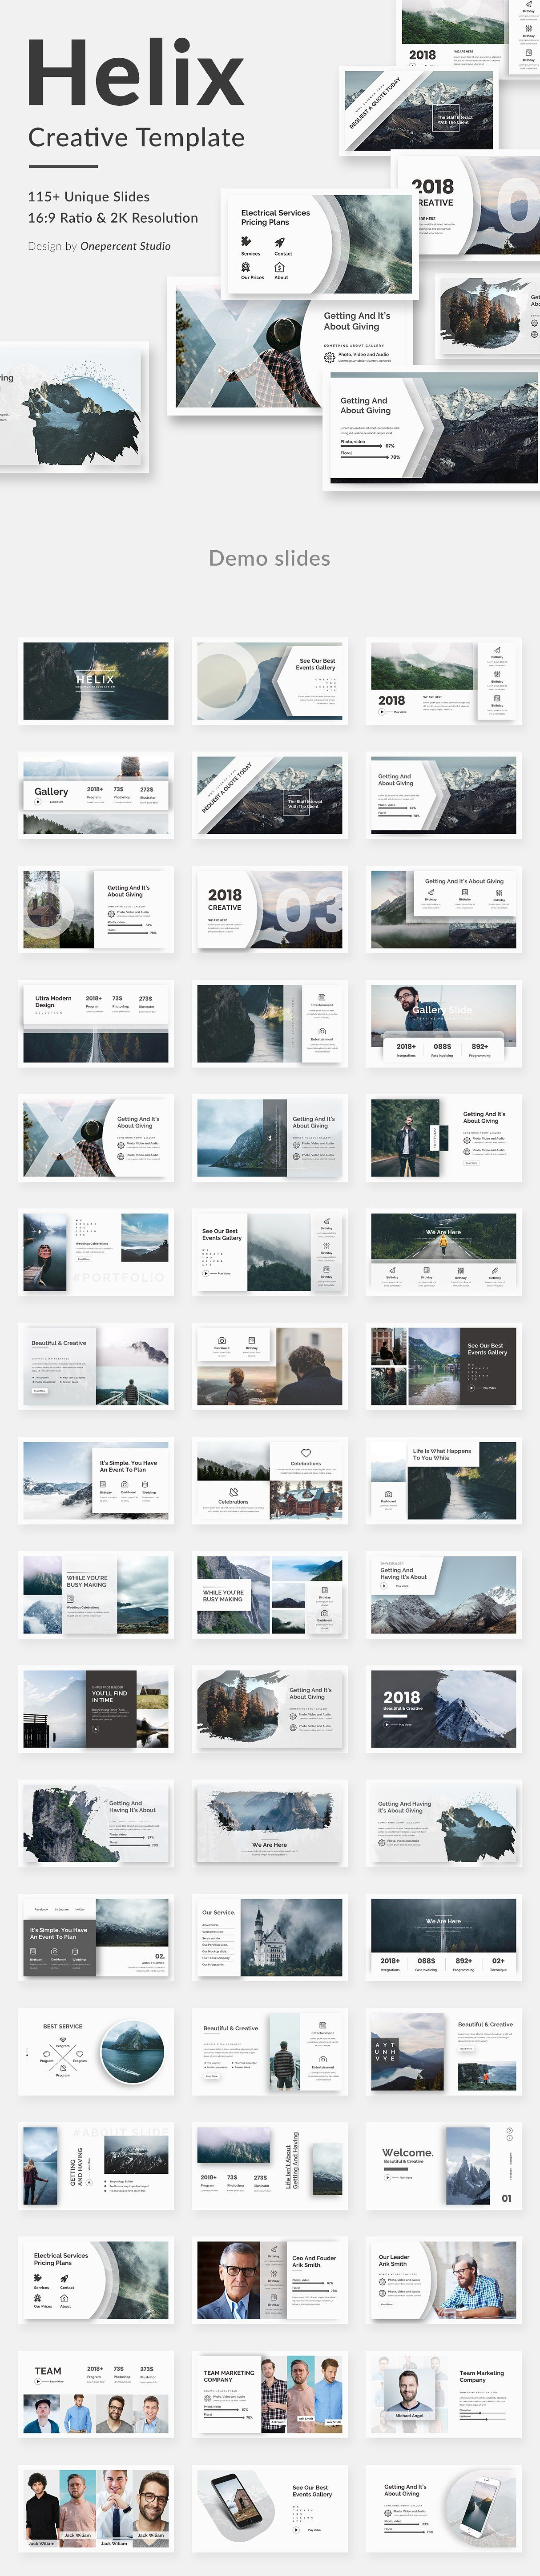 Helix Creative Google Slide Template Easy Font Icons Size New